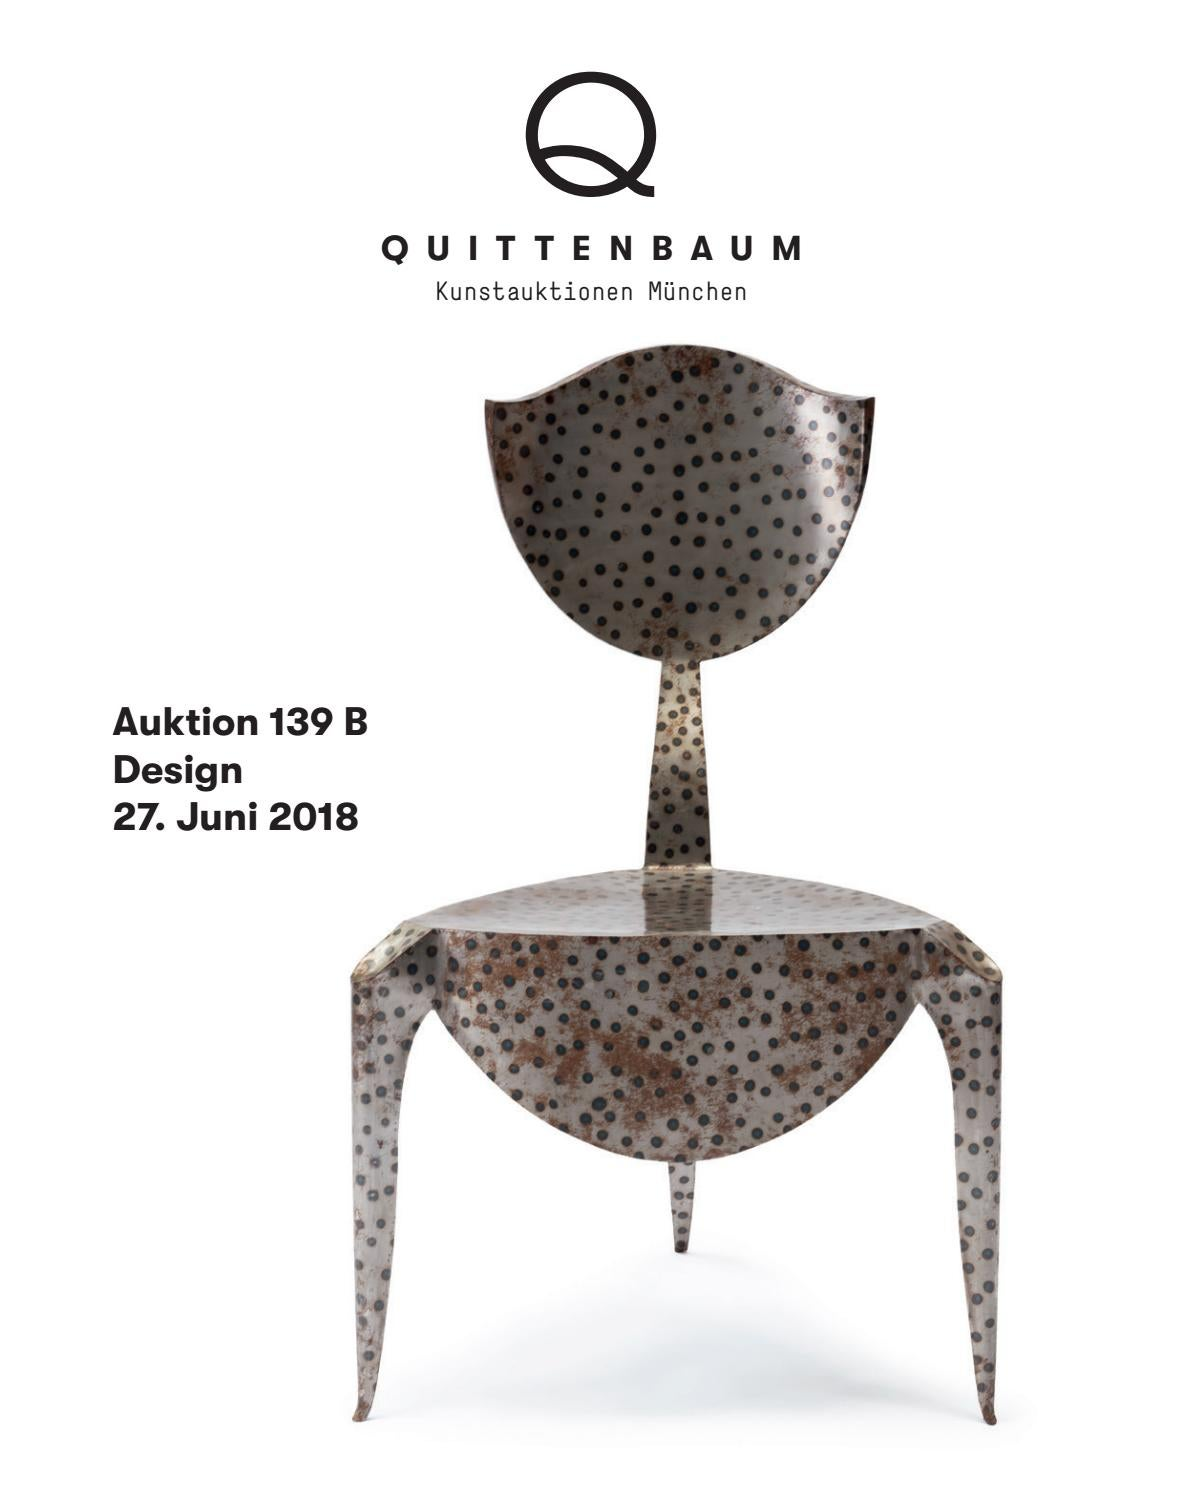 Sessel Asiatisch Auction 139 B Design Quittenbaum Art Auctions